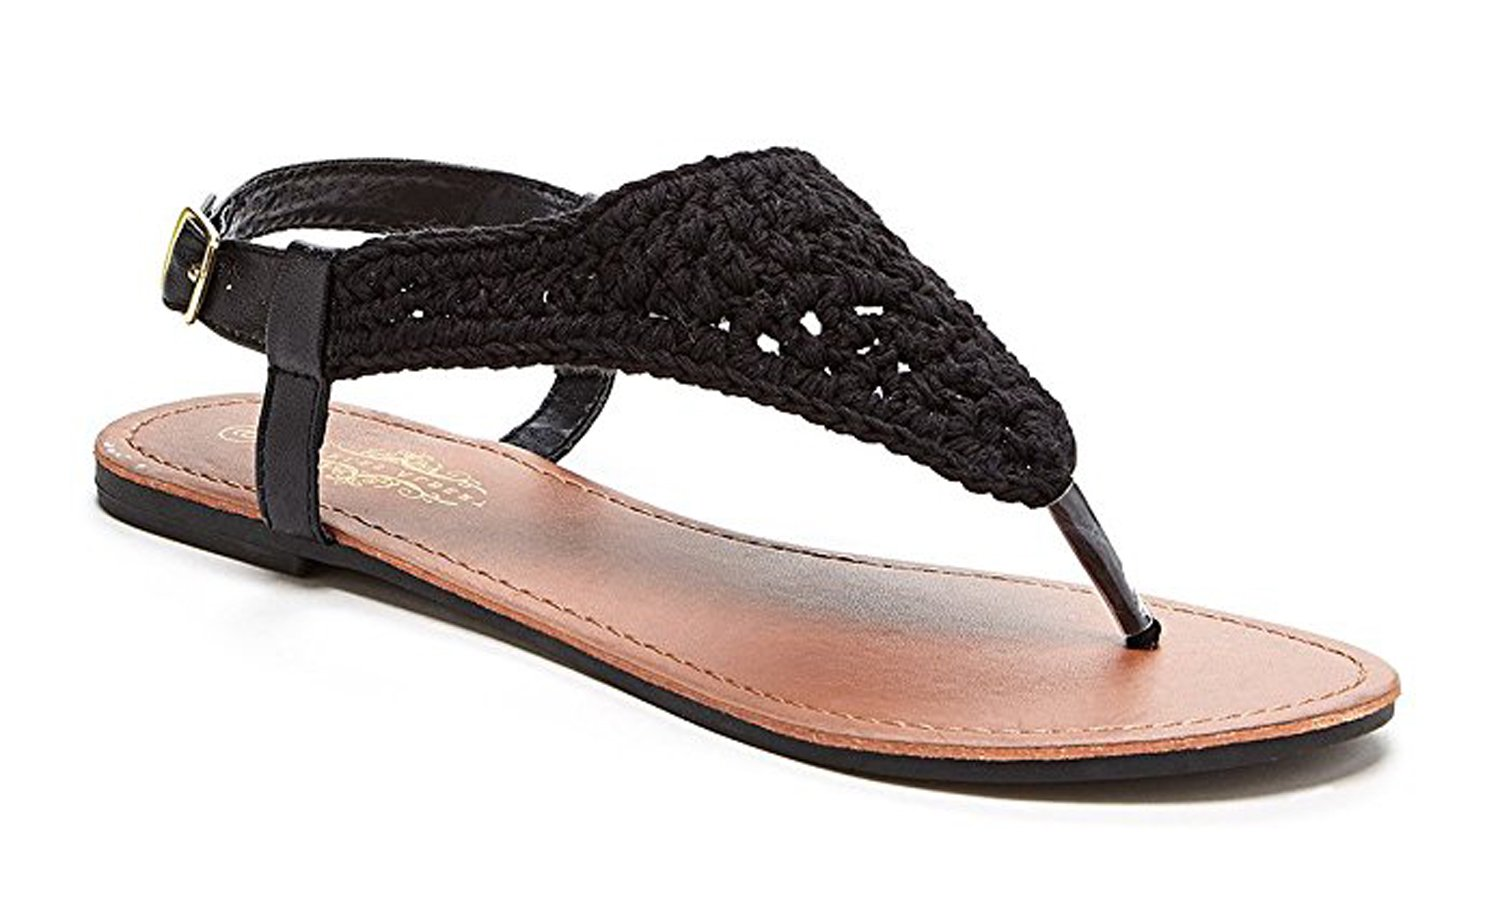 Orly Shoes Women's Bali Crochet Upper Sandal Flat Braided with Adjustable Ankle in Black Size: 7